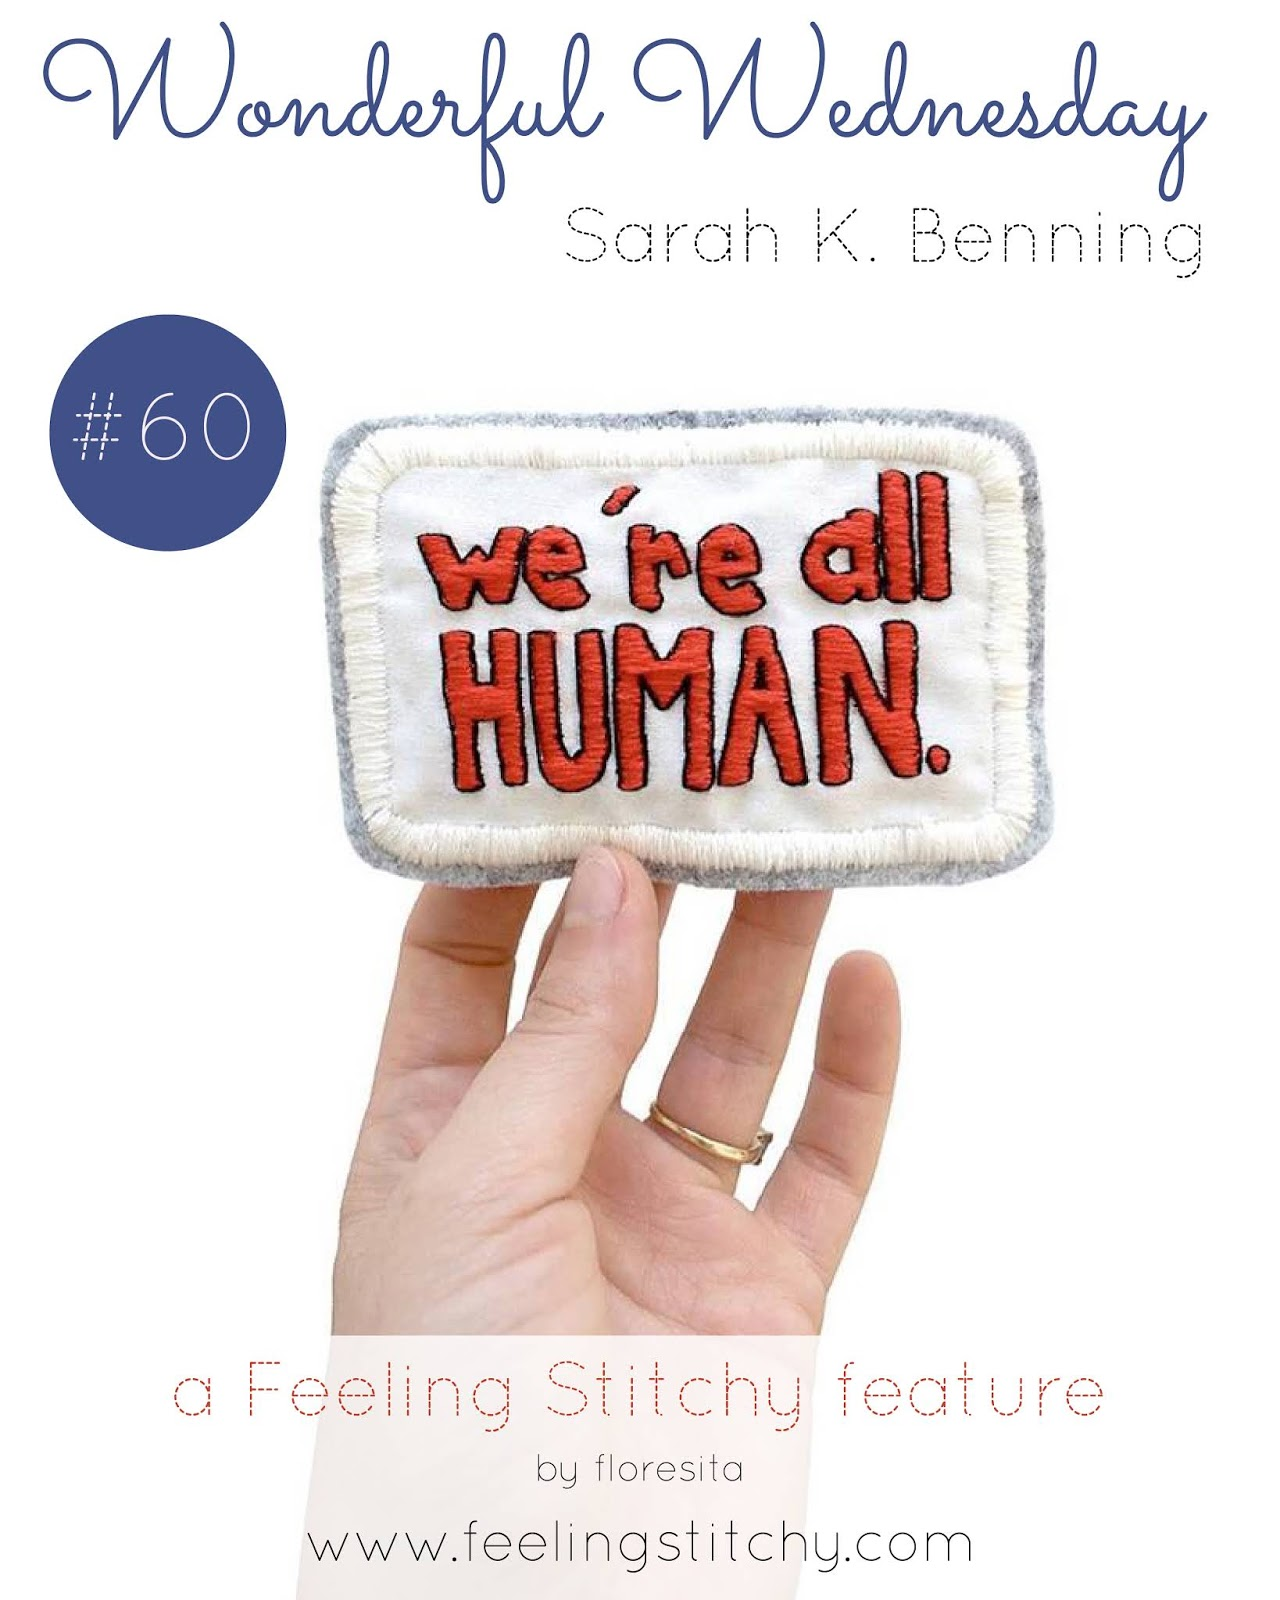 Wonderful Wednesday 60 featuring the We're All Human pattern by Sarah K Benning, a feature on Feeling Stitchy by floresita